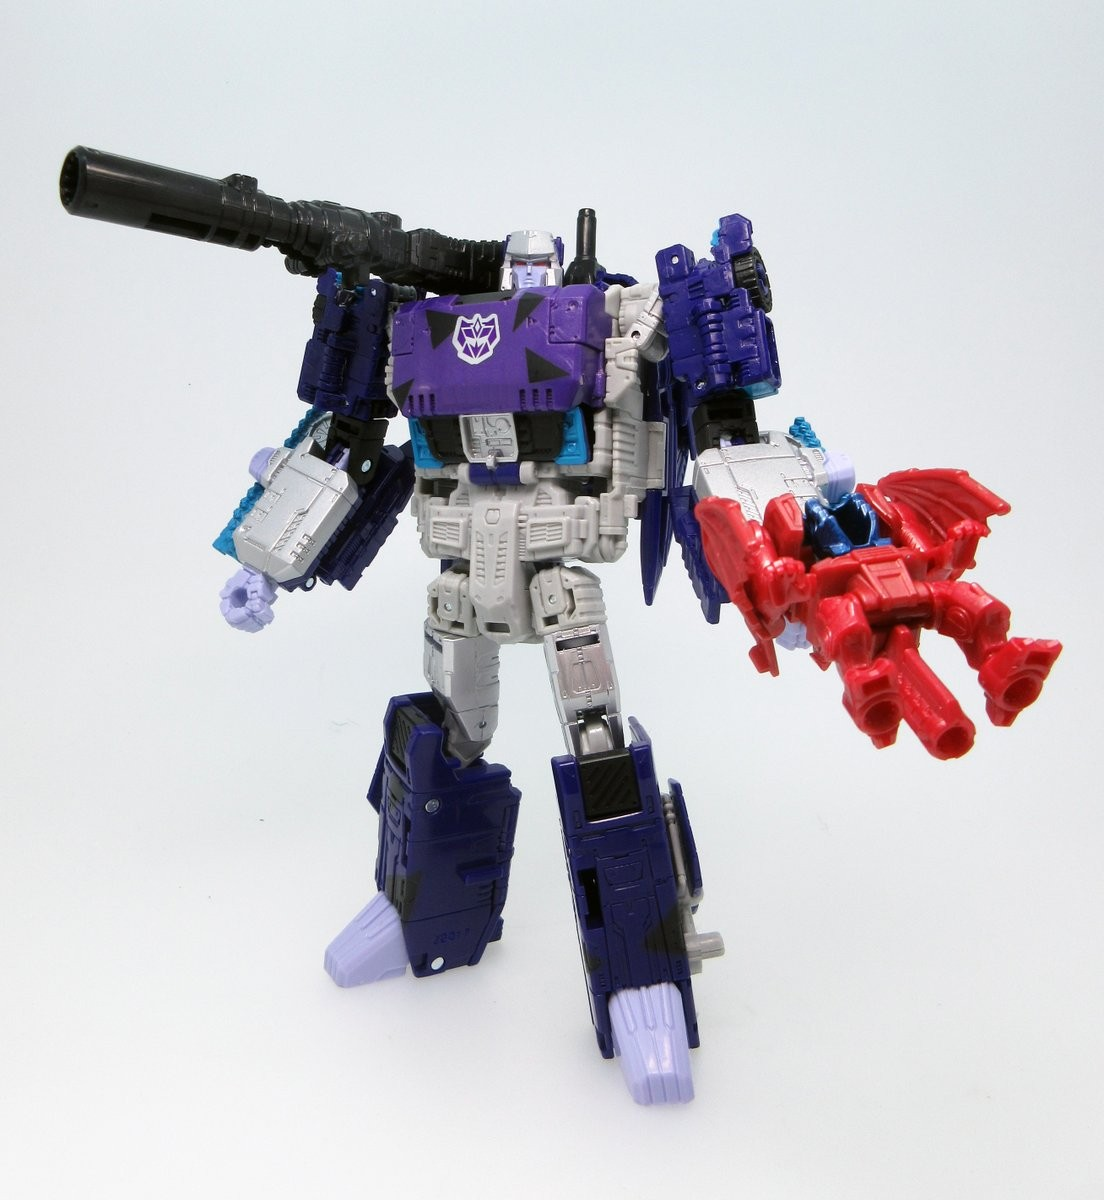 New Images of Takara Tomy Transformers Legends LG63 G2 ...